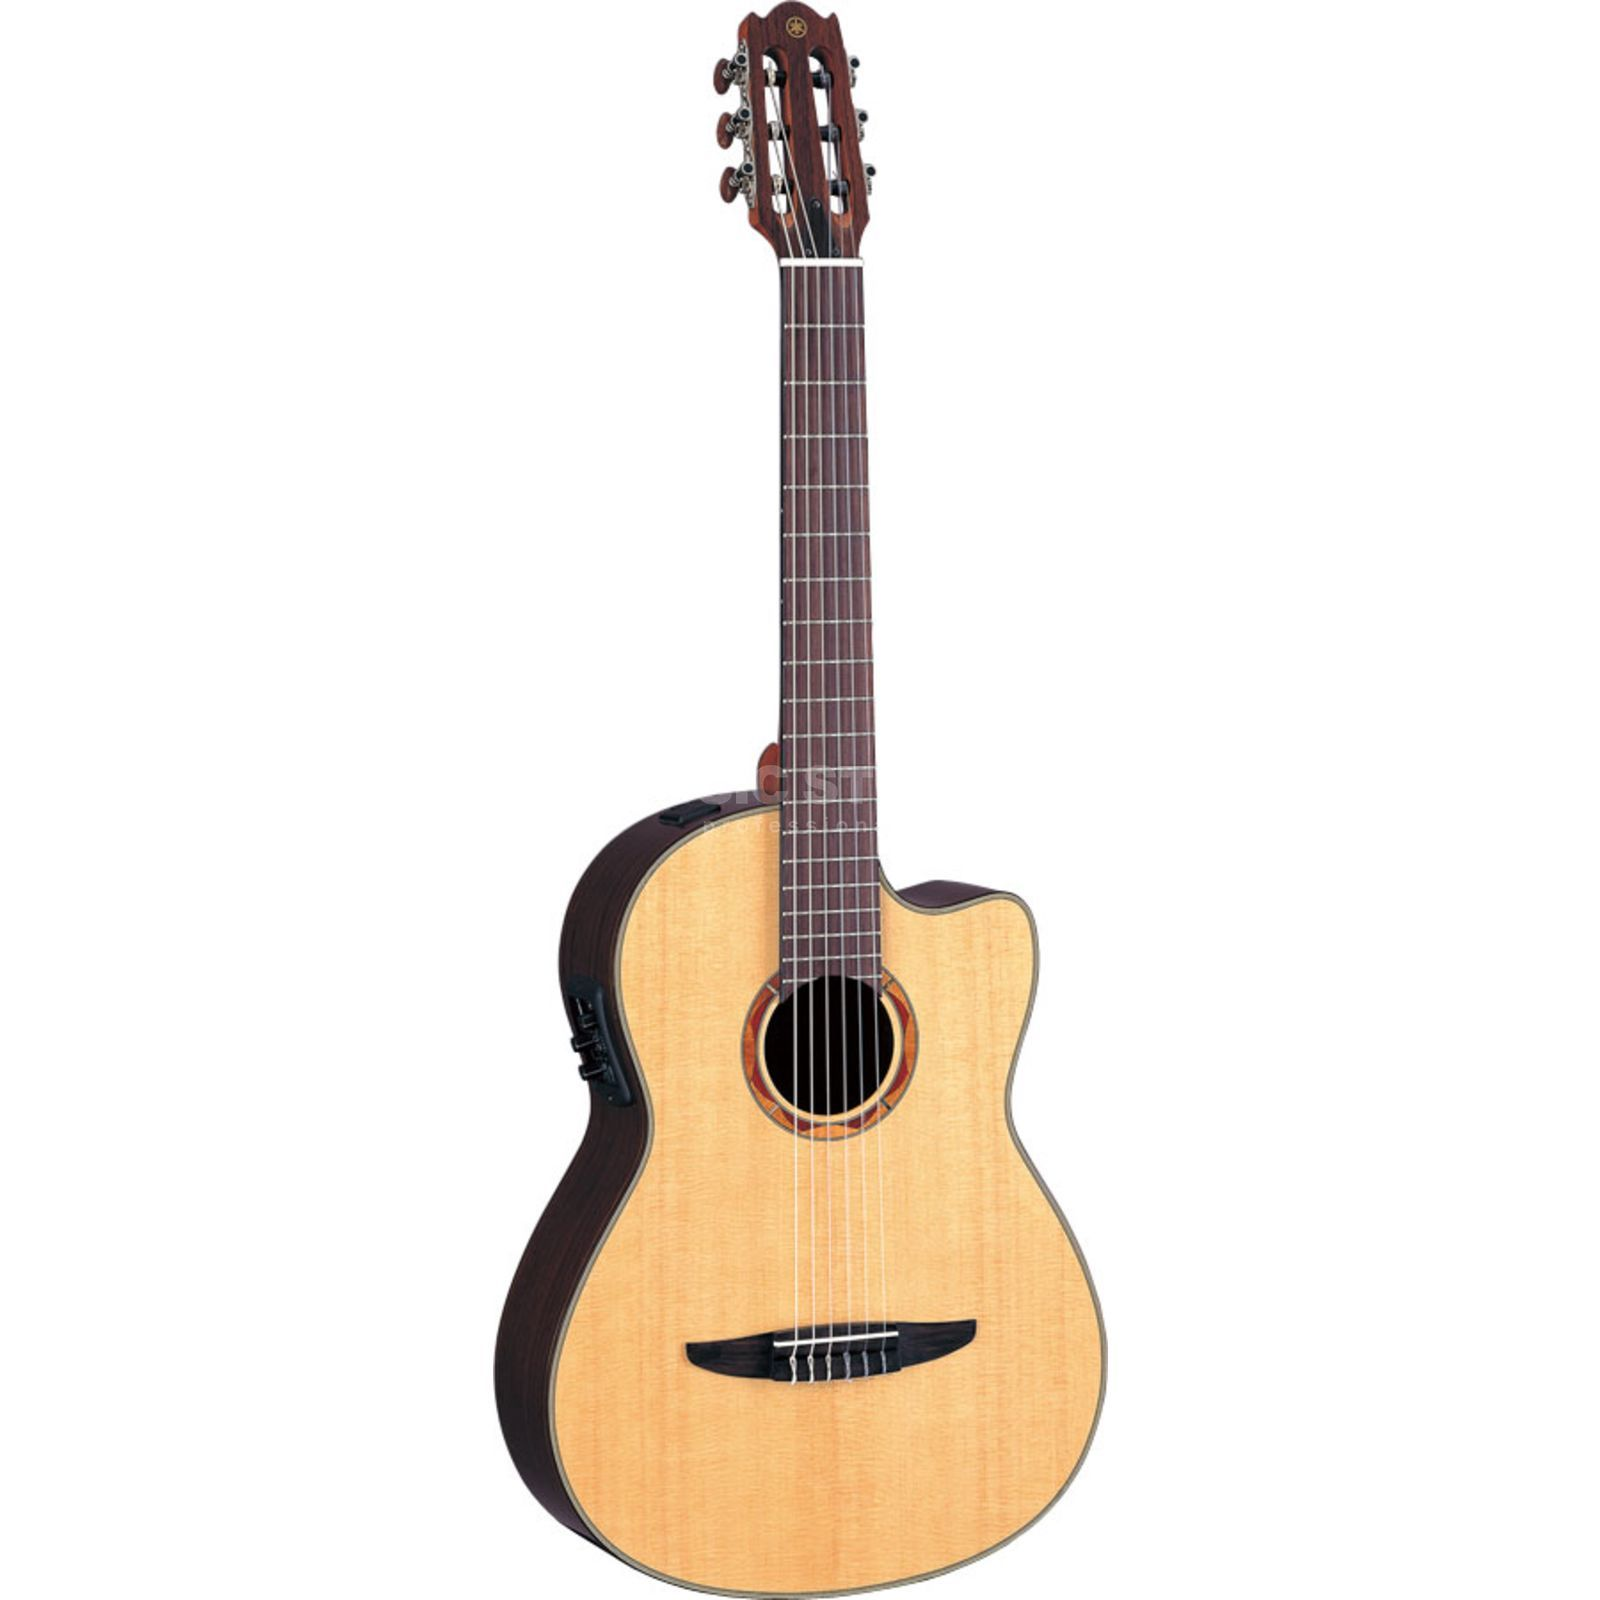 Yamaha NCX900R Classical Electro Acou stic Guitar   Produktbillede